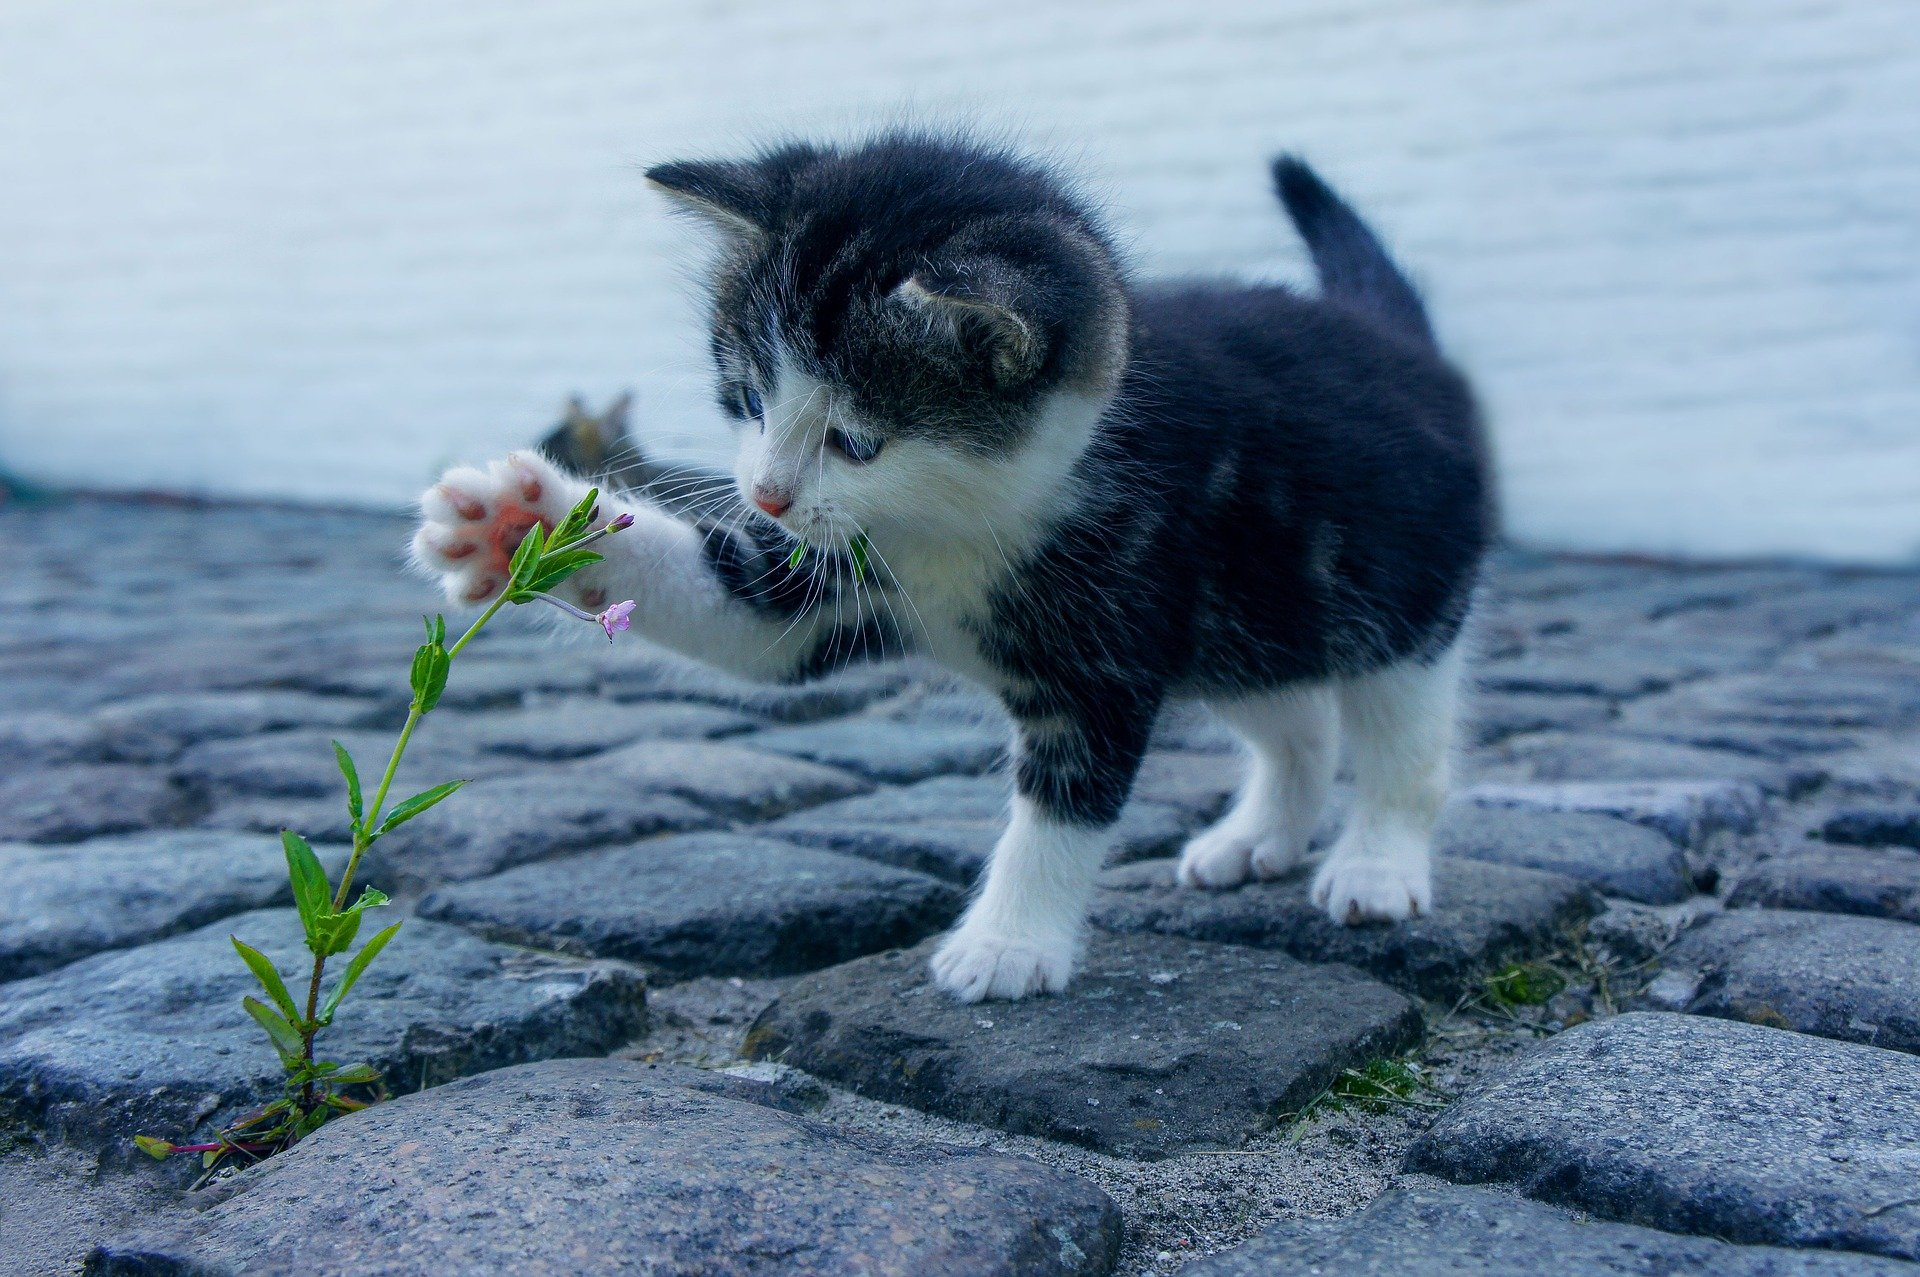 kitty playing with a follower